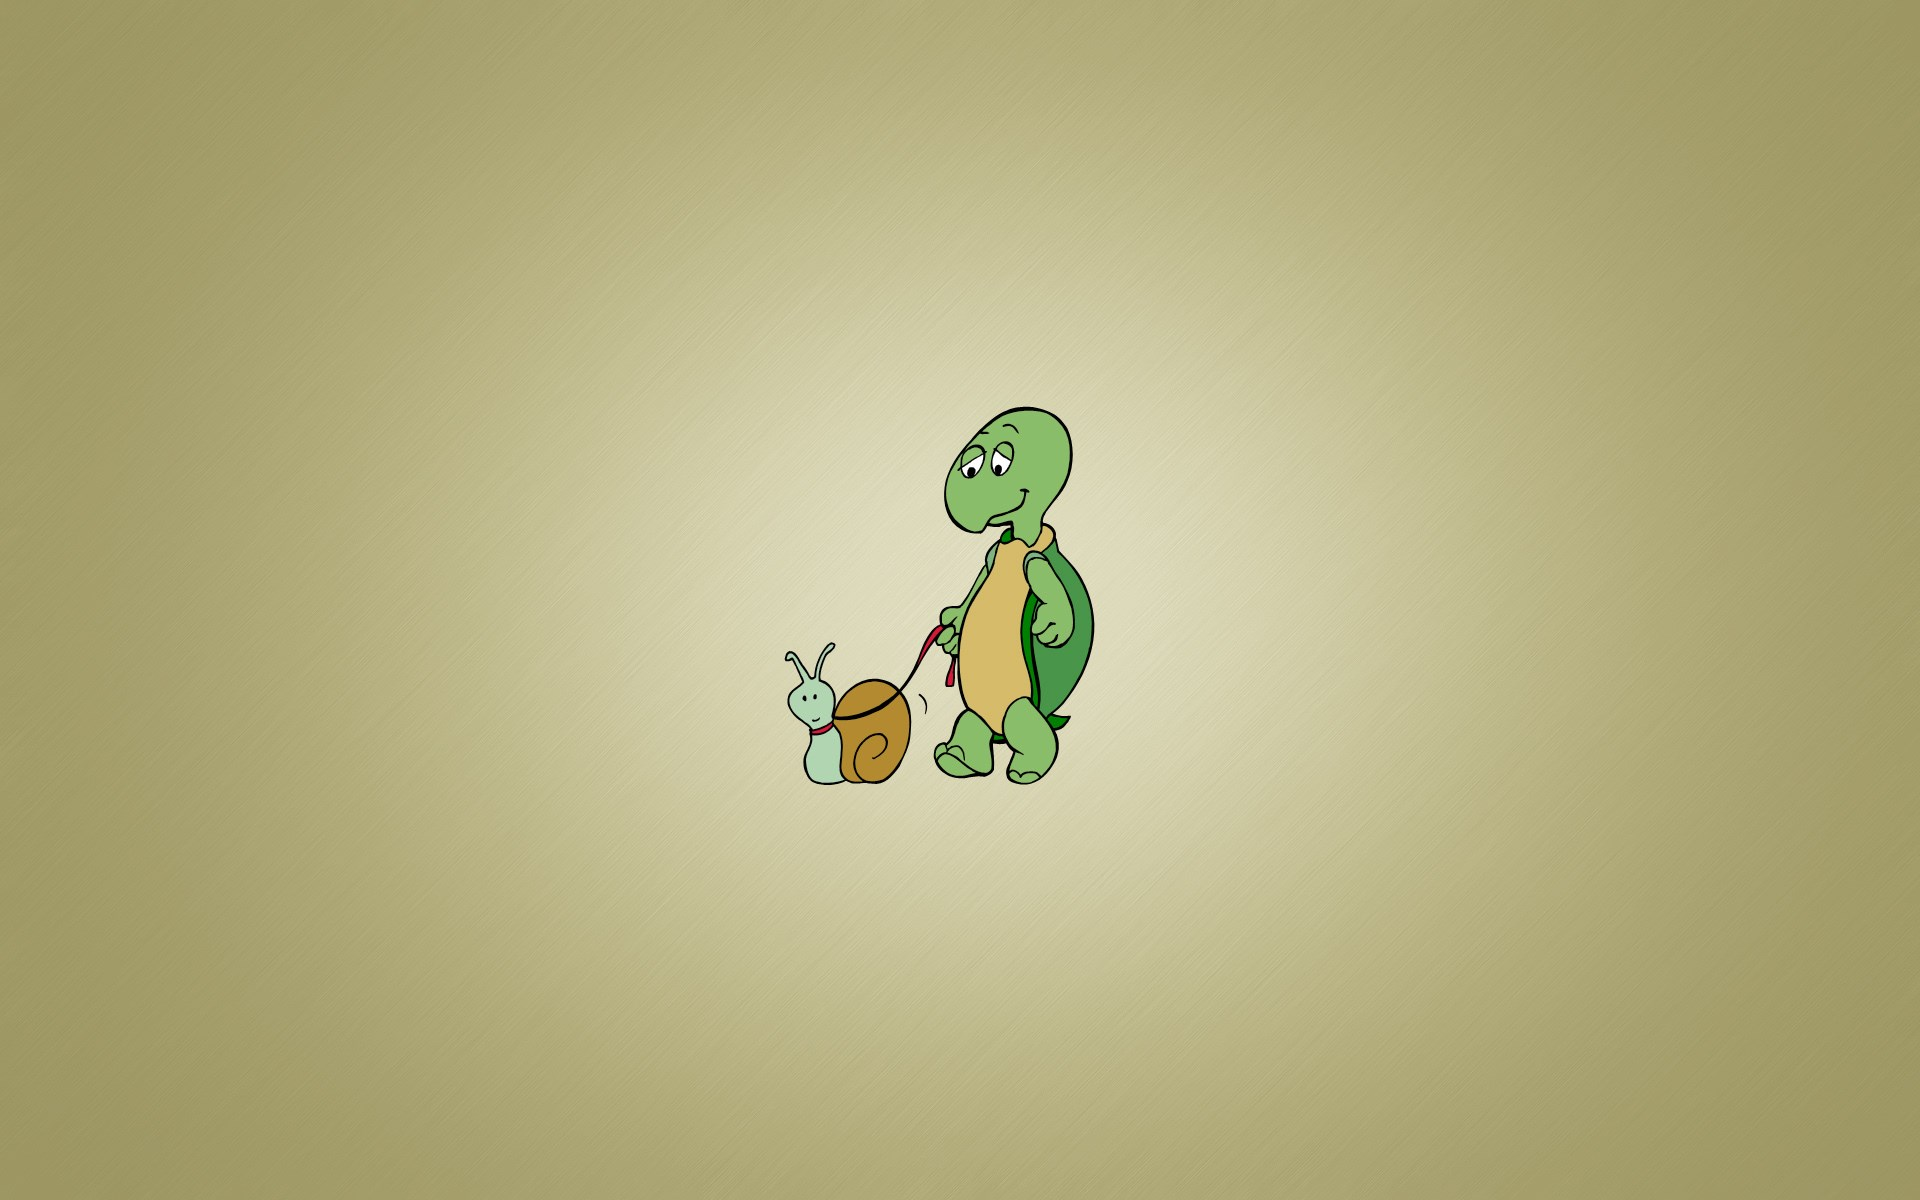 Funny 3d Animal Turtle Wallpapers Hd: Turtle HD Wallpaper